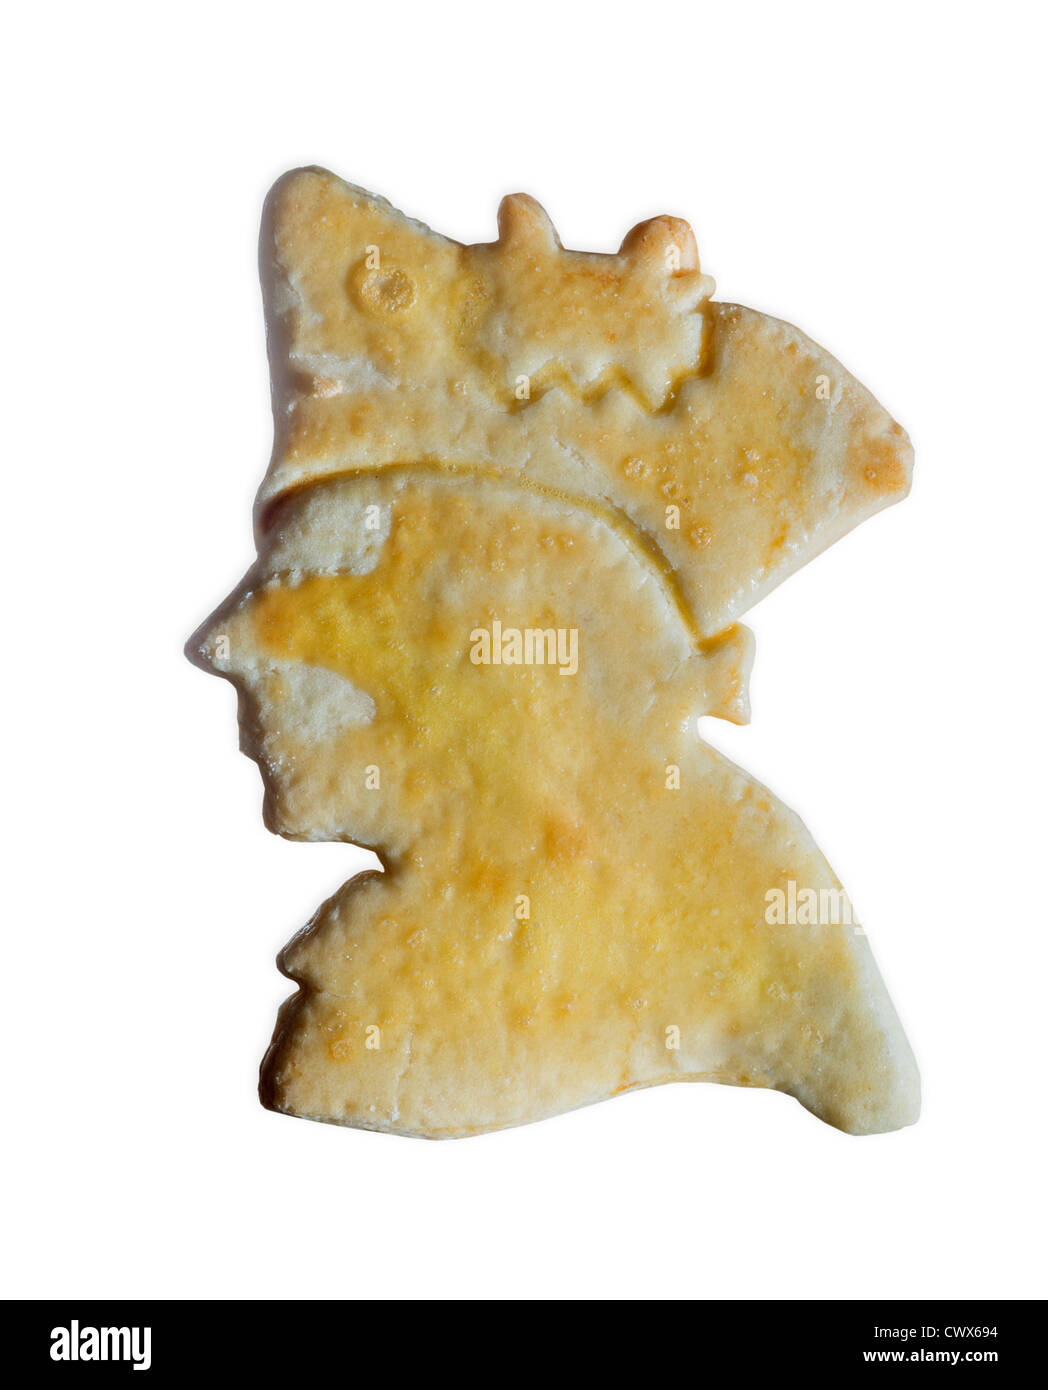 cake cookie in shape of old fritz known as Frederick the Great Frederick II King in Prussia cookie sweet backery - Stock Image